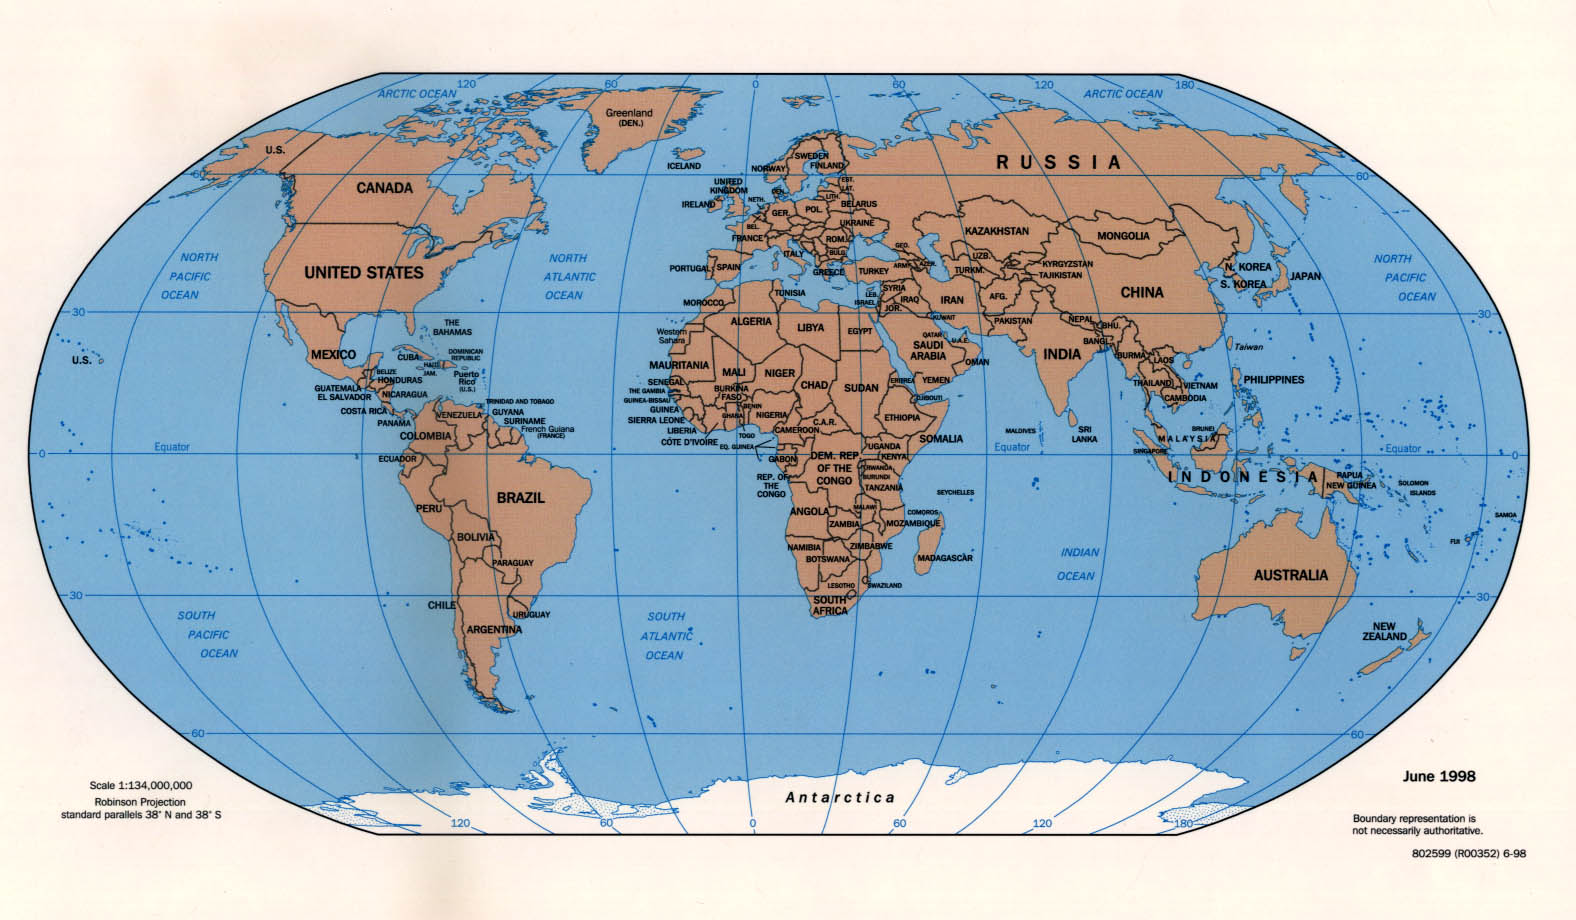 Map Of The Whole World Labeled.World Maps Perry Castaneda Map Collection Ut Library Online